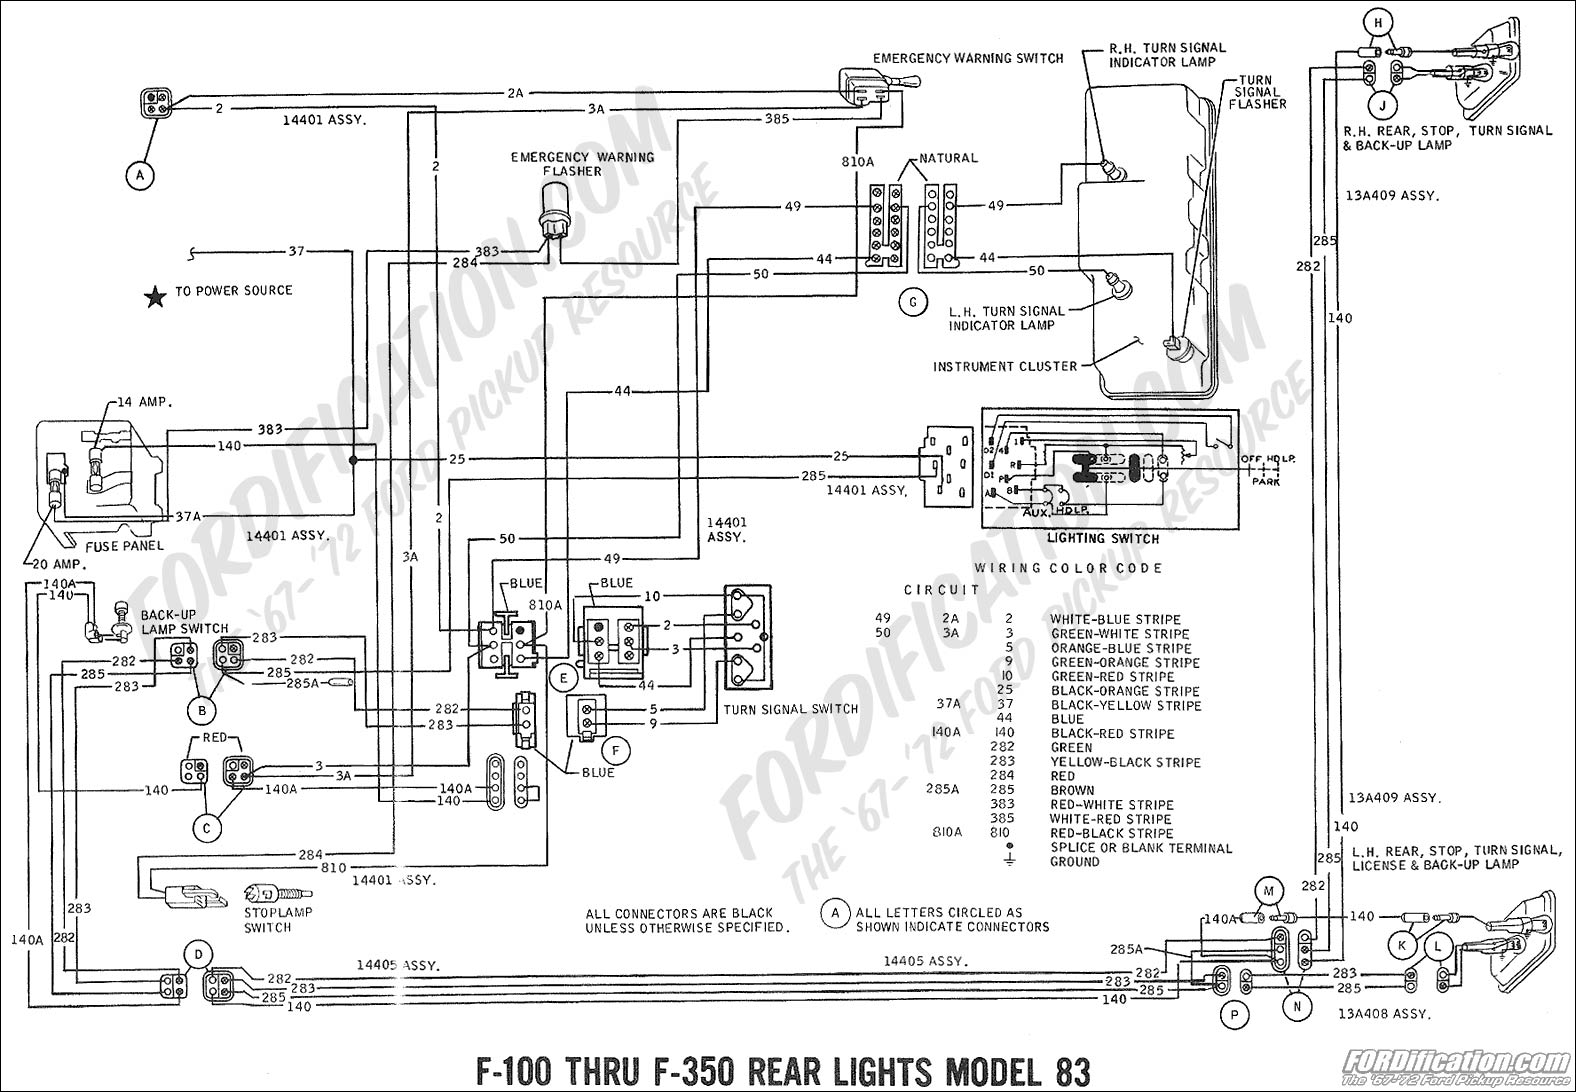 ford truck technical drawings and schematics section h wiring rh fordification com 1990 Ford Alternator Wiring Diagram 1989 Ford Alternator Wiring Diagram